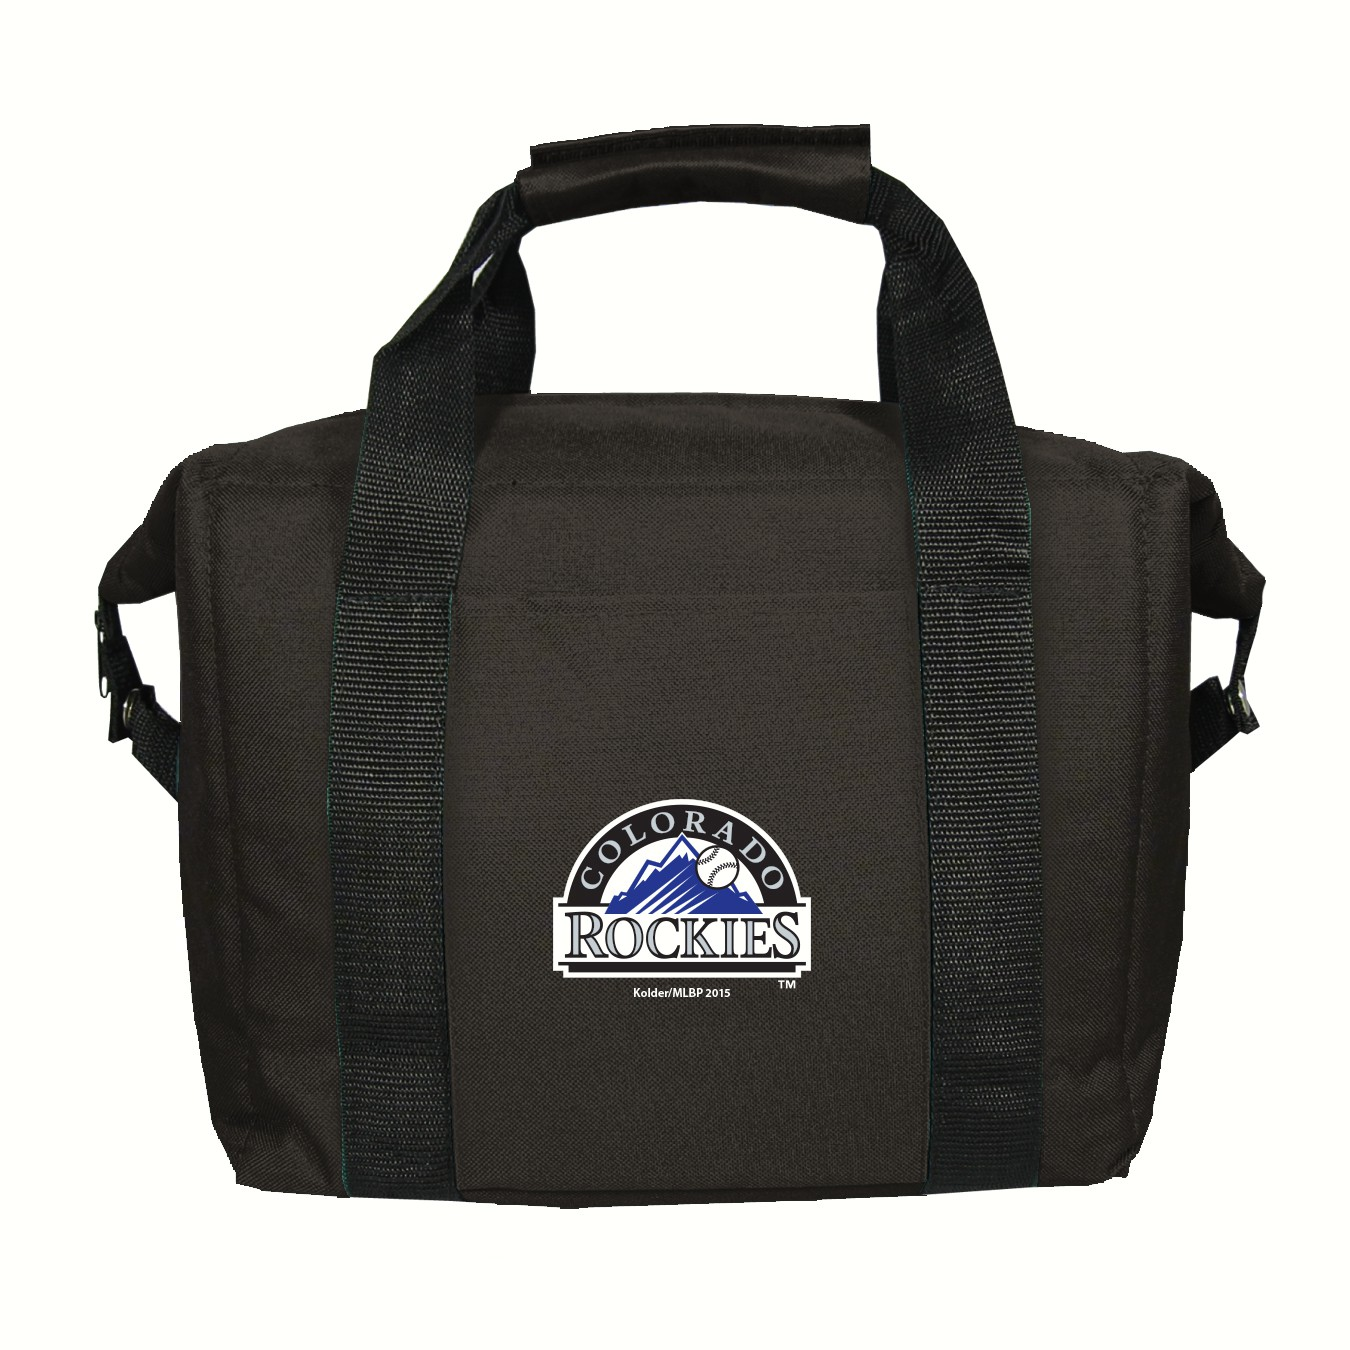 12 pack Kooler Bag - Colorado Rockies